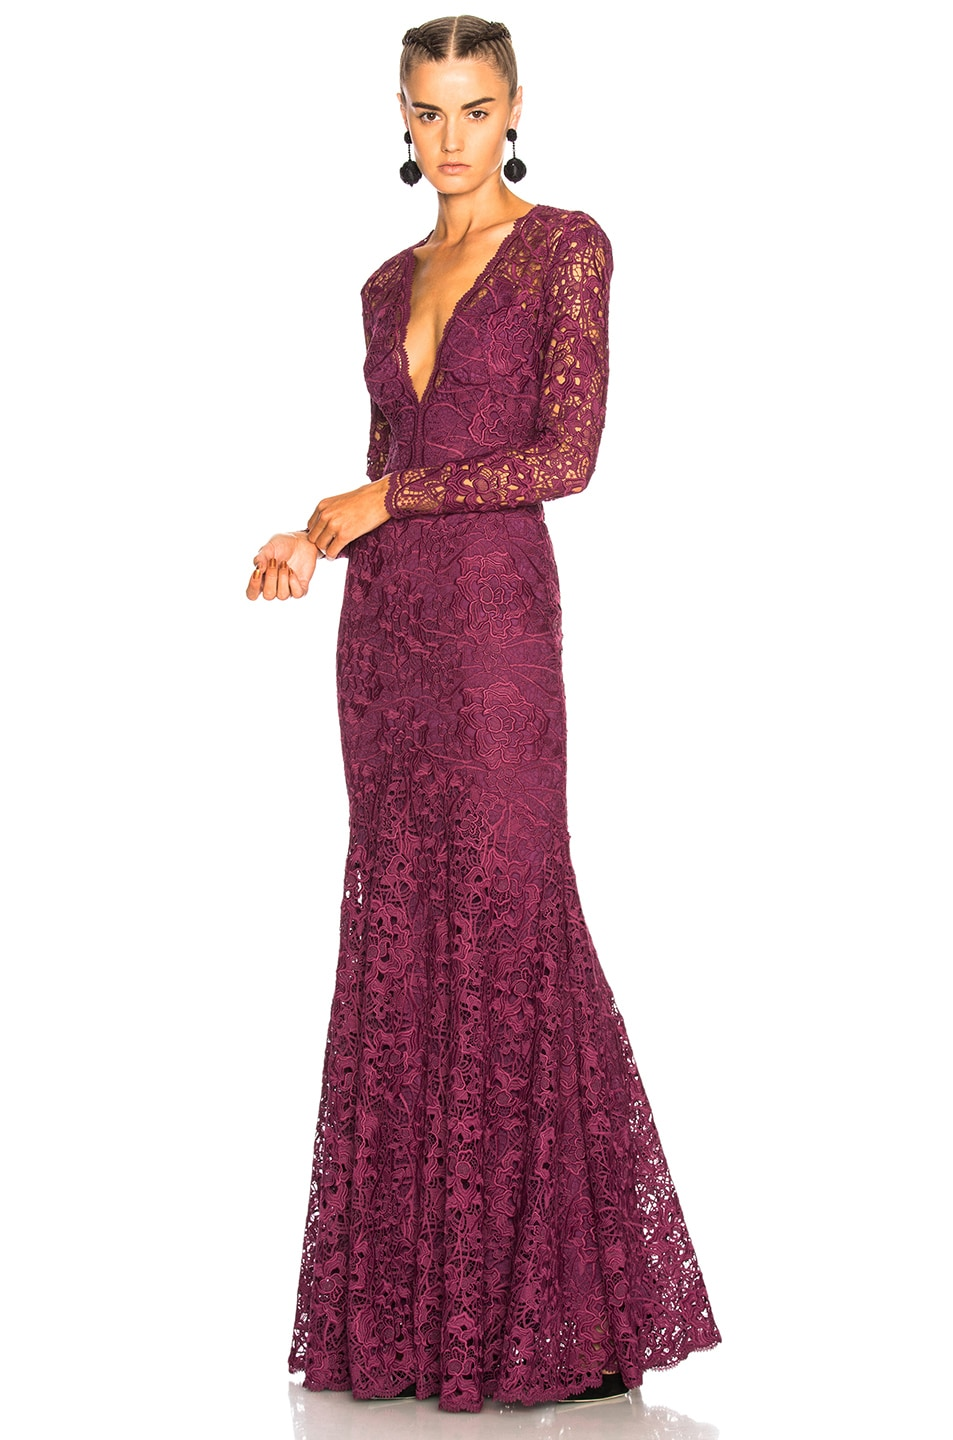 Image 1 Of Zuhair Murad Long Plunging Neckline Guipure Lace Dress In Amaranth